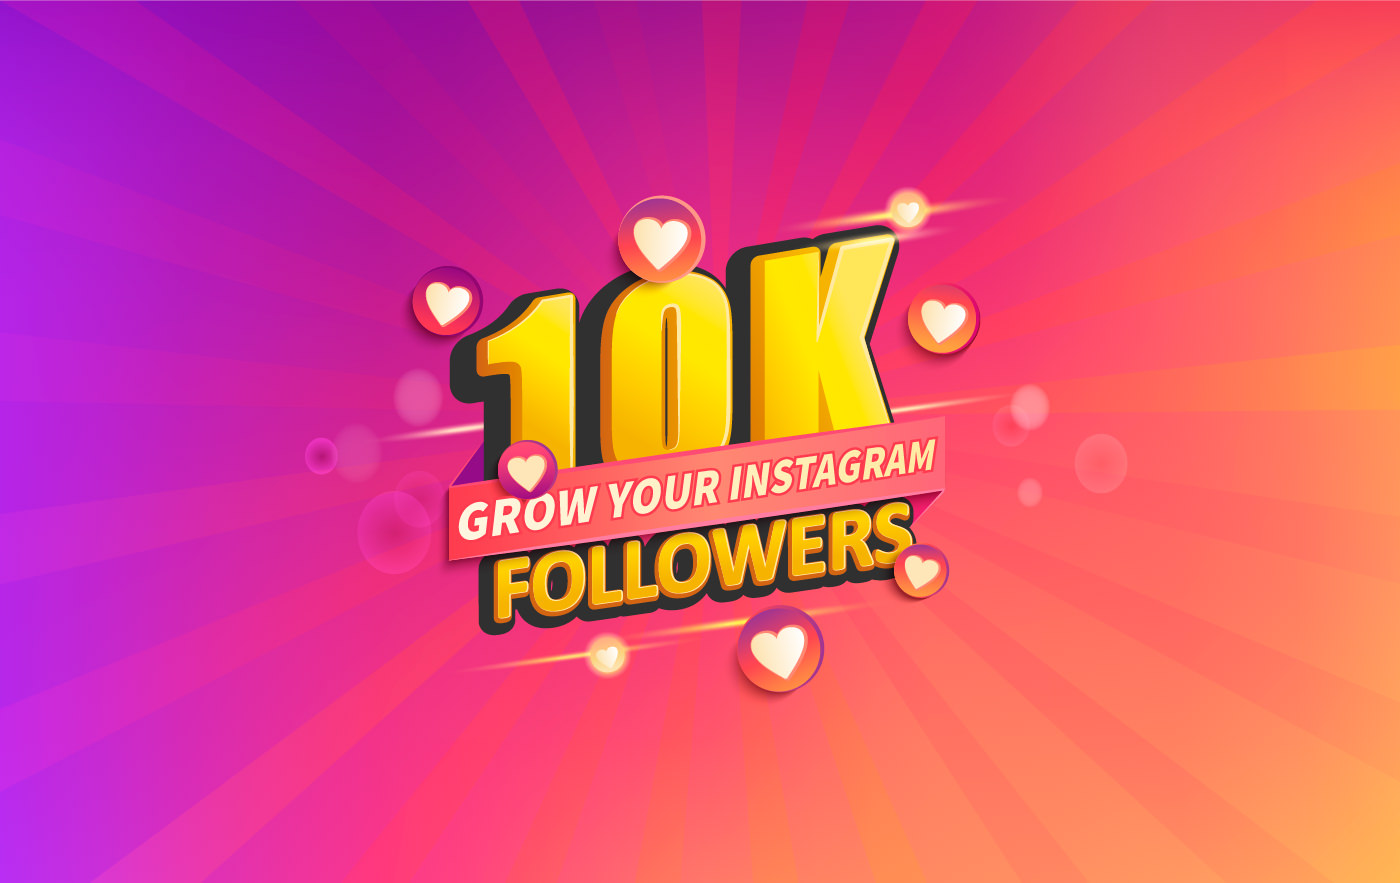 7 Tips To Grow Your Instagram Account To 10k Followers